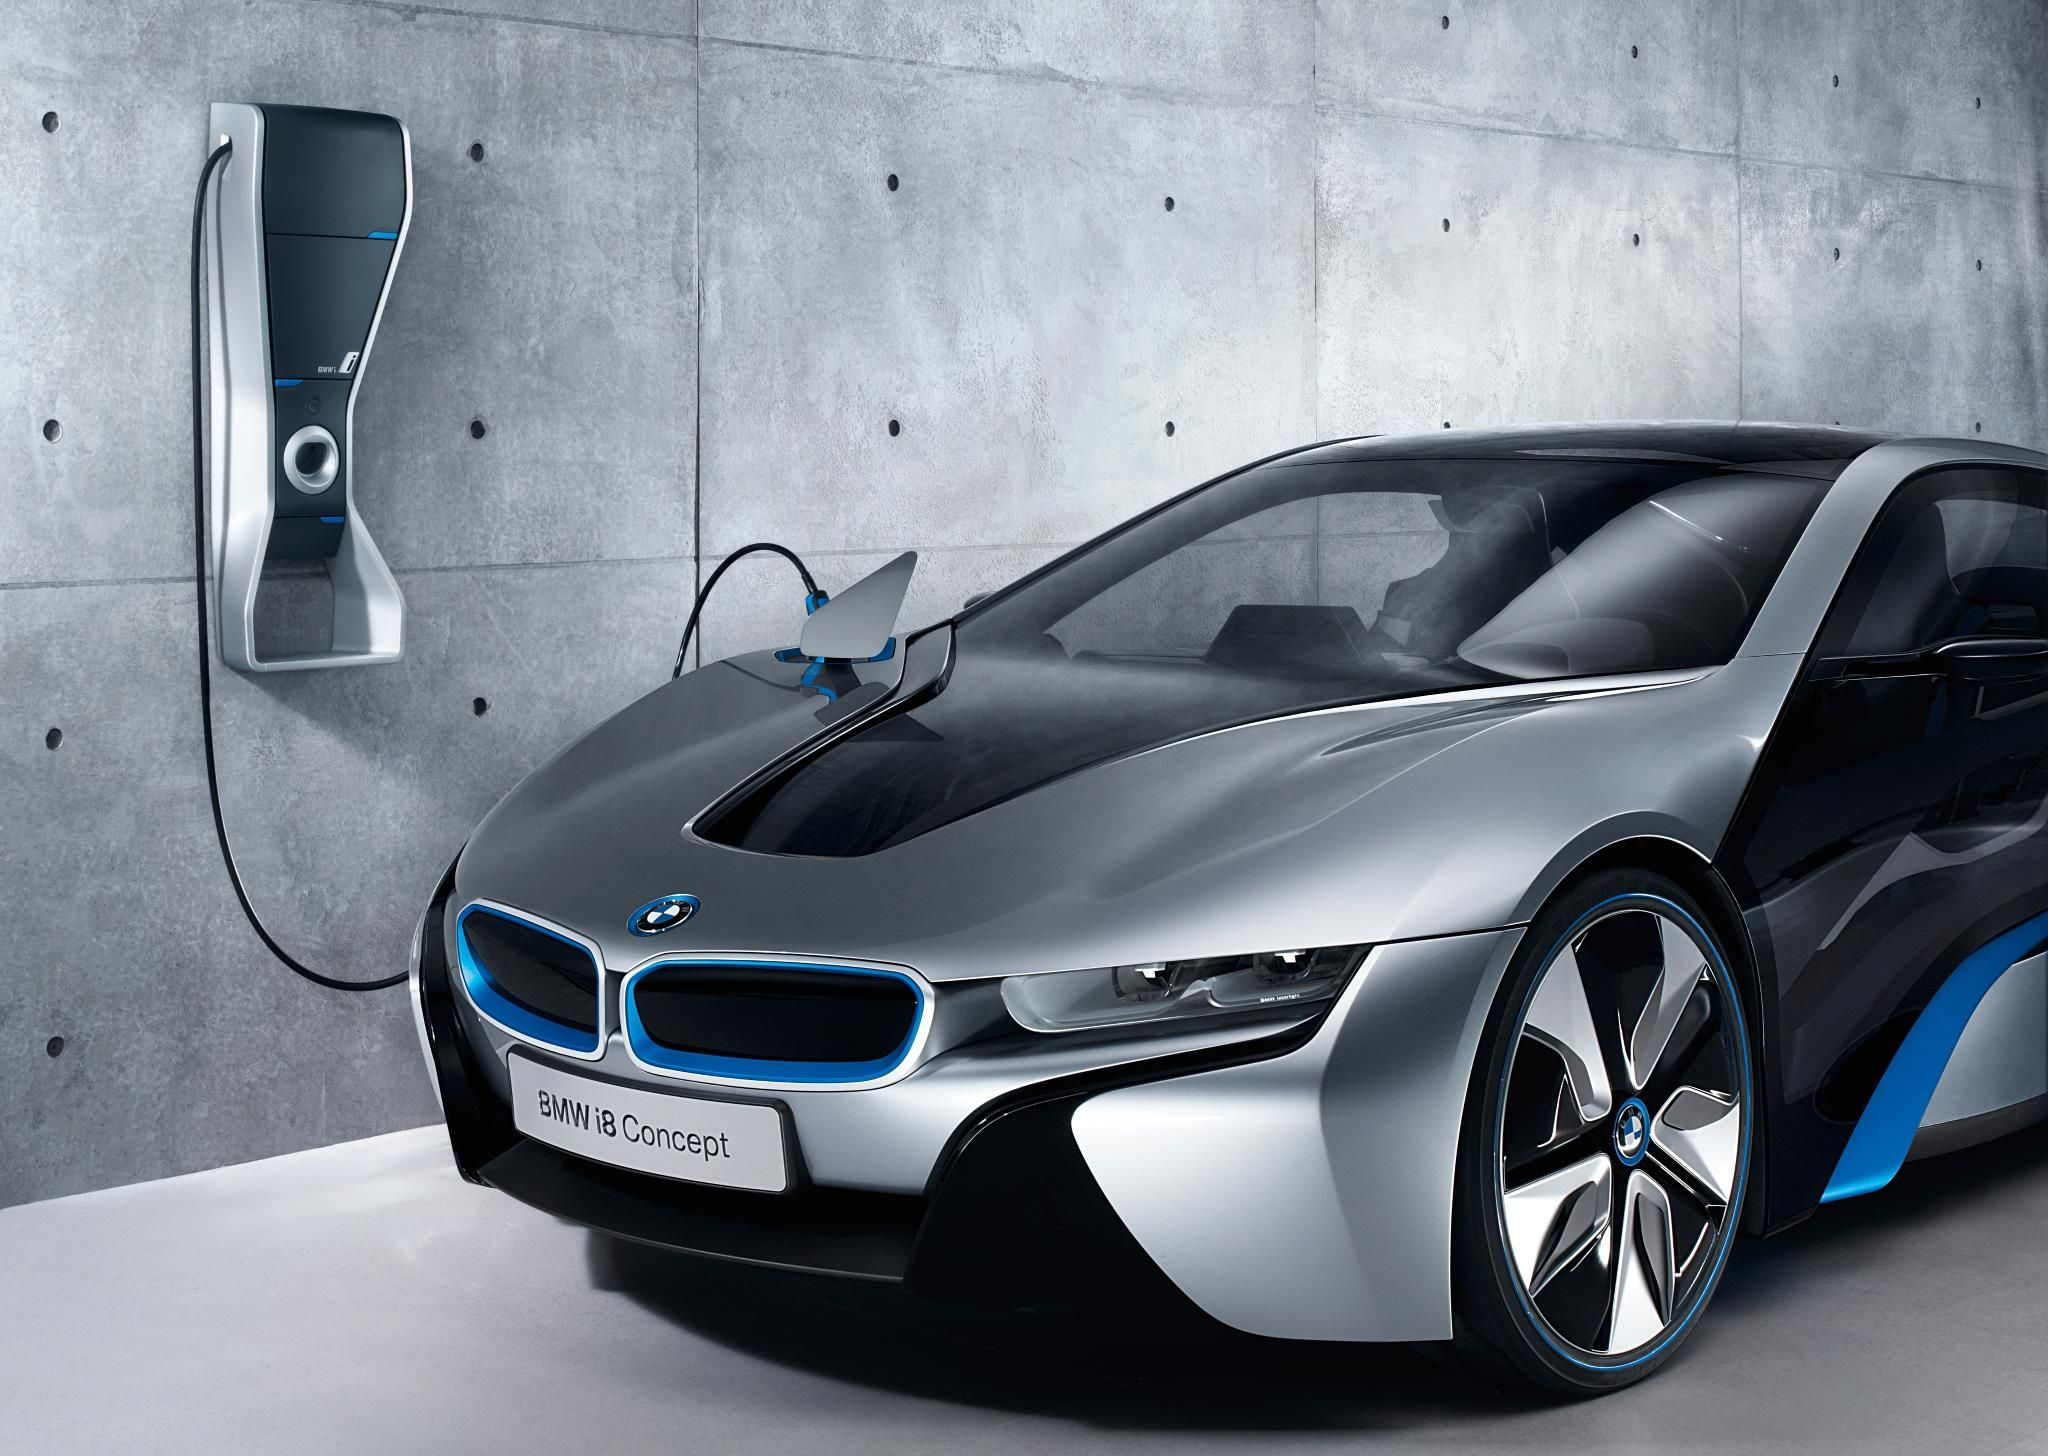 edition news d charging bmw beach pebble concours elegance